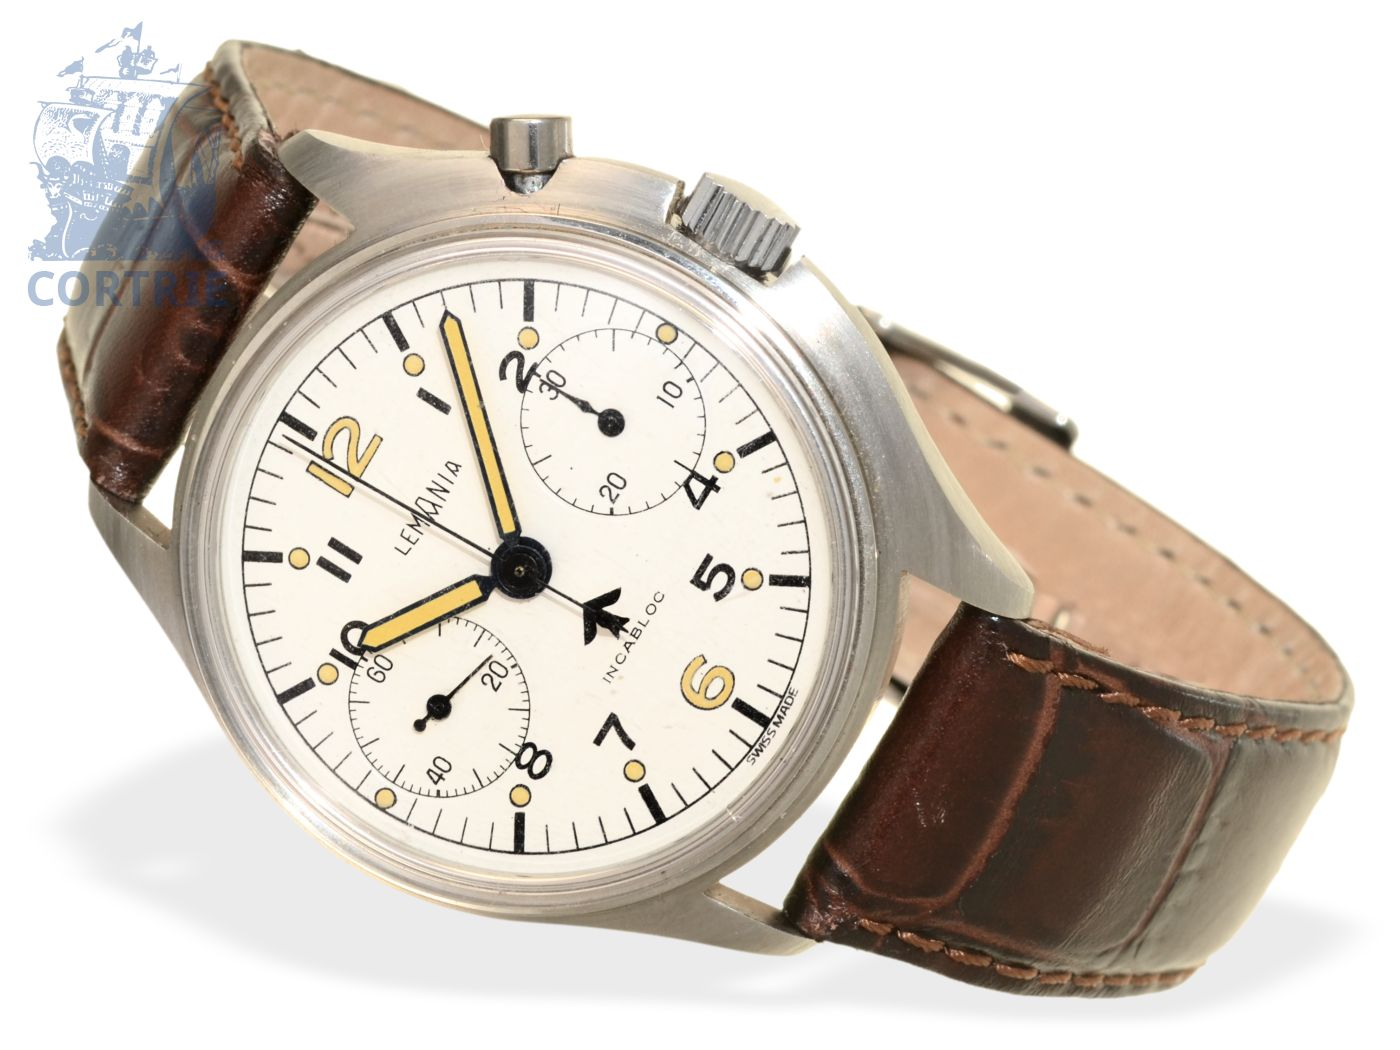 Wristwatch: big pilot's chronograph of Royal Air Force, Lemania from the 60s-